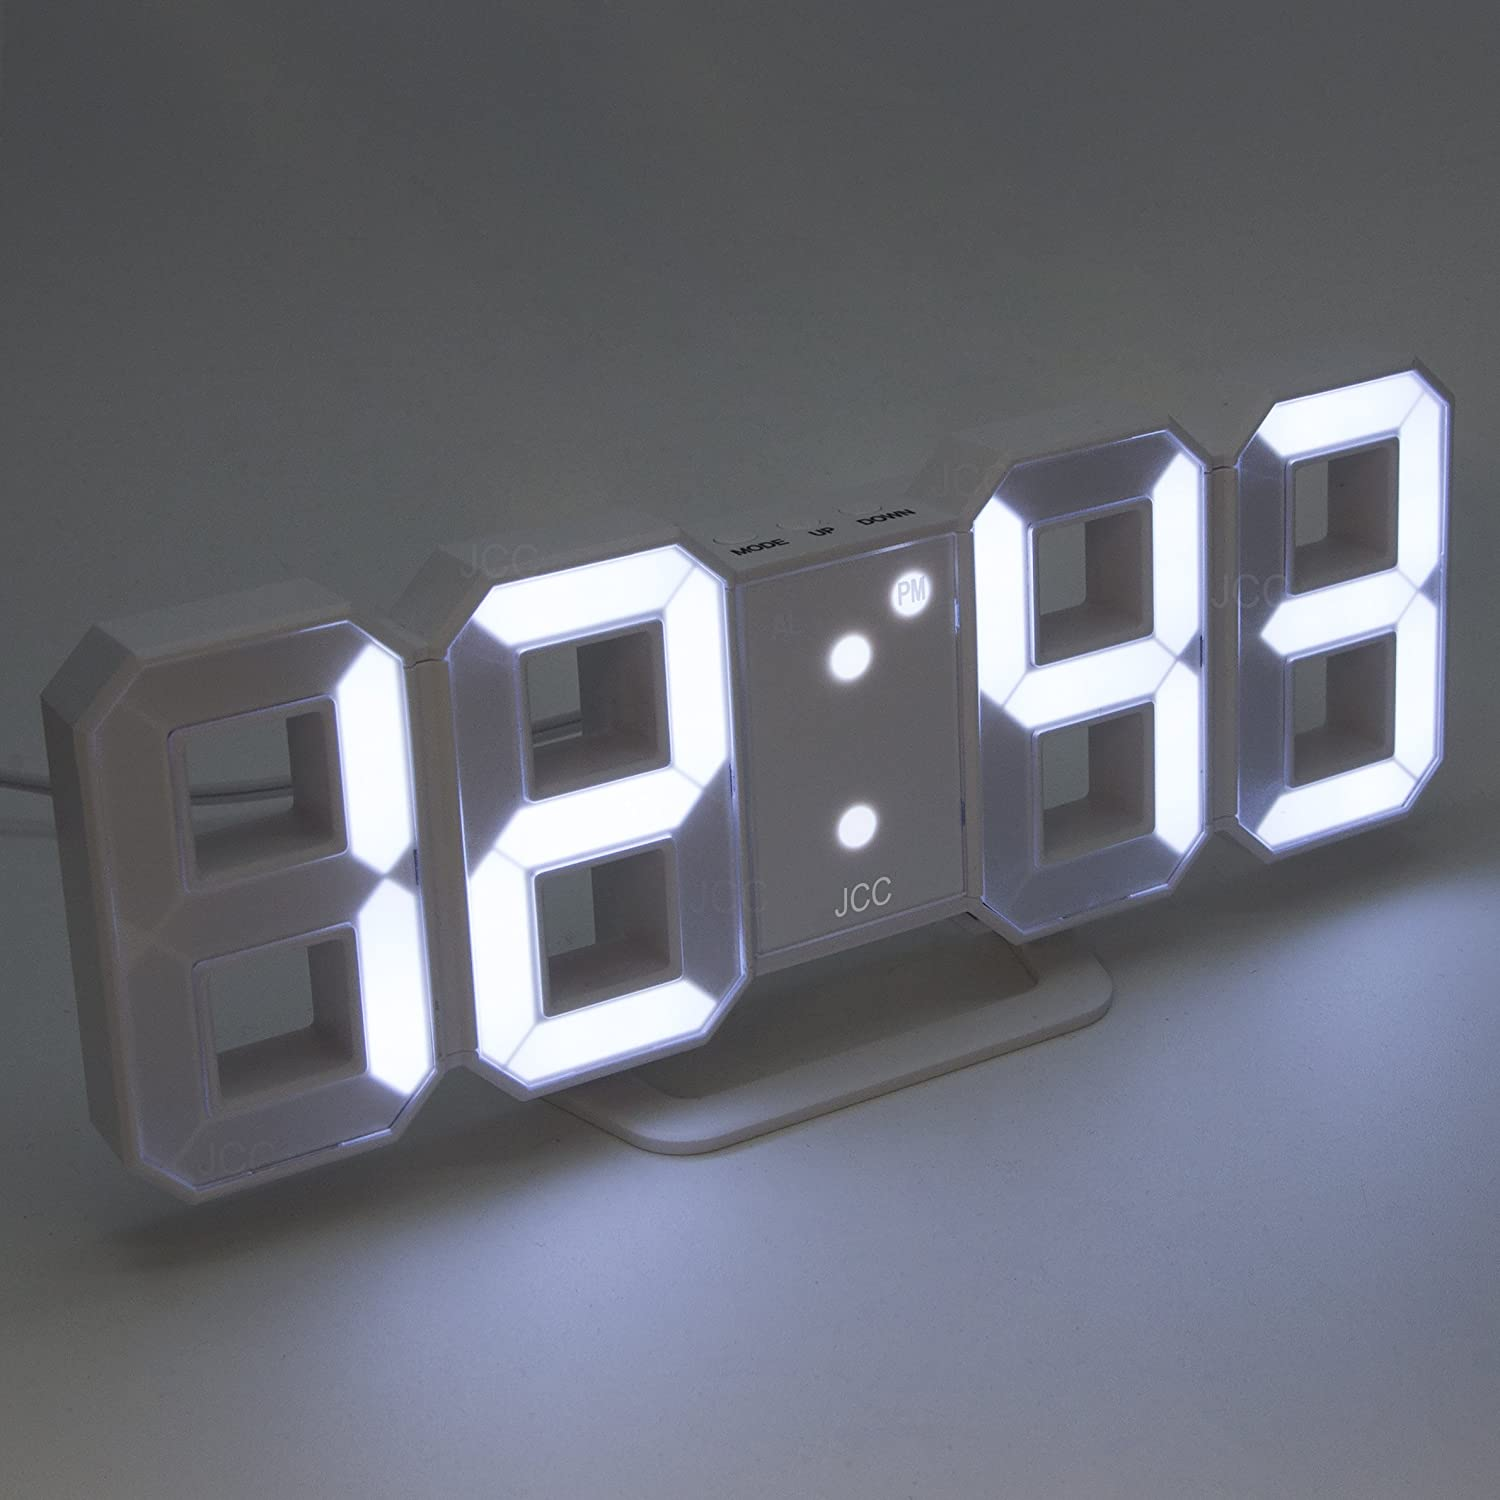 Large Countdown Timer Topsimages